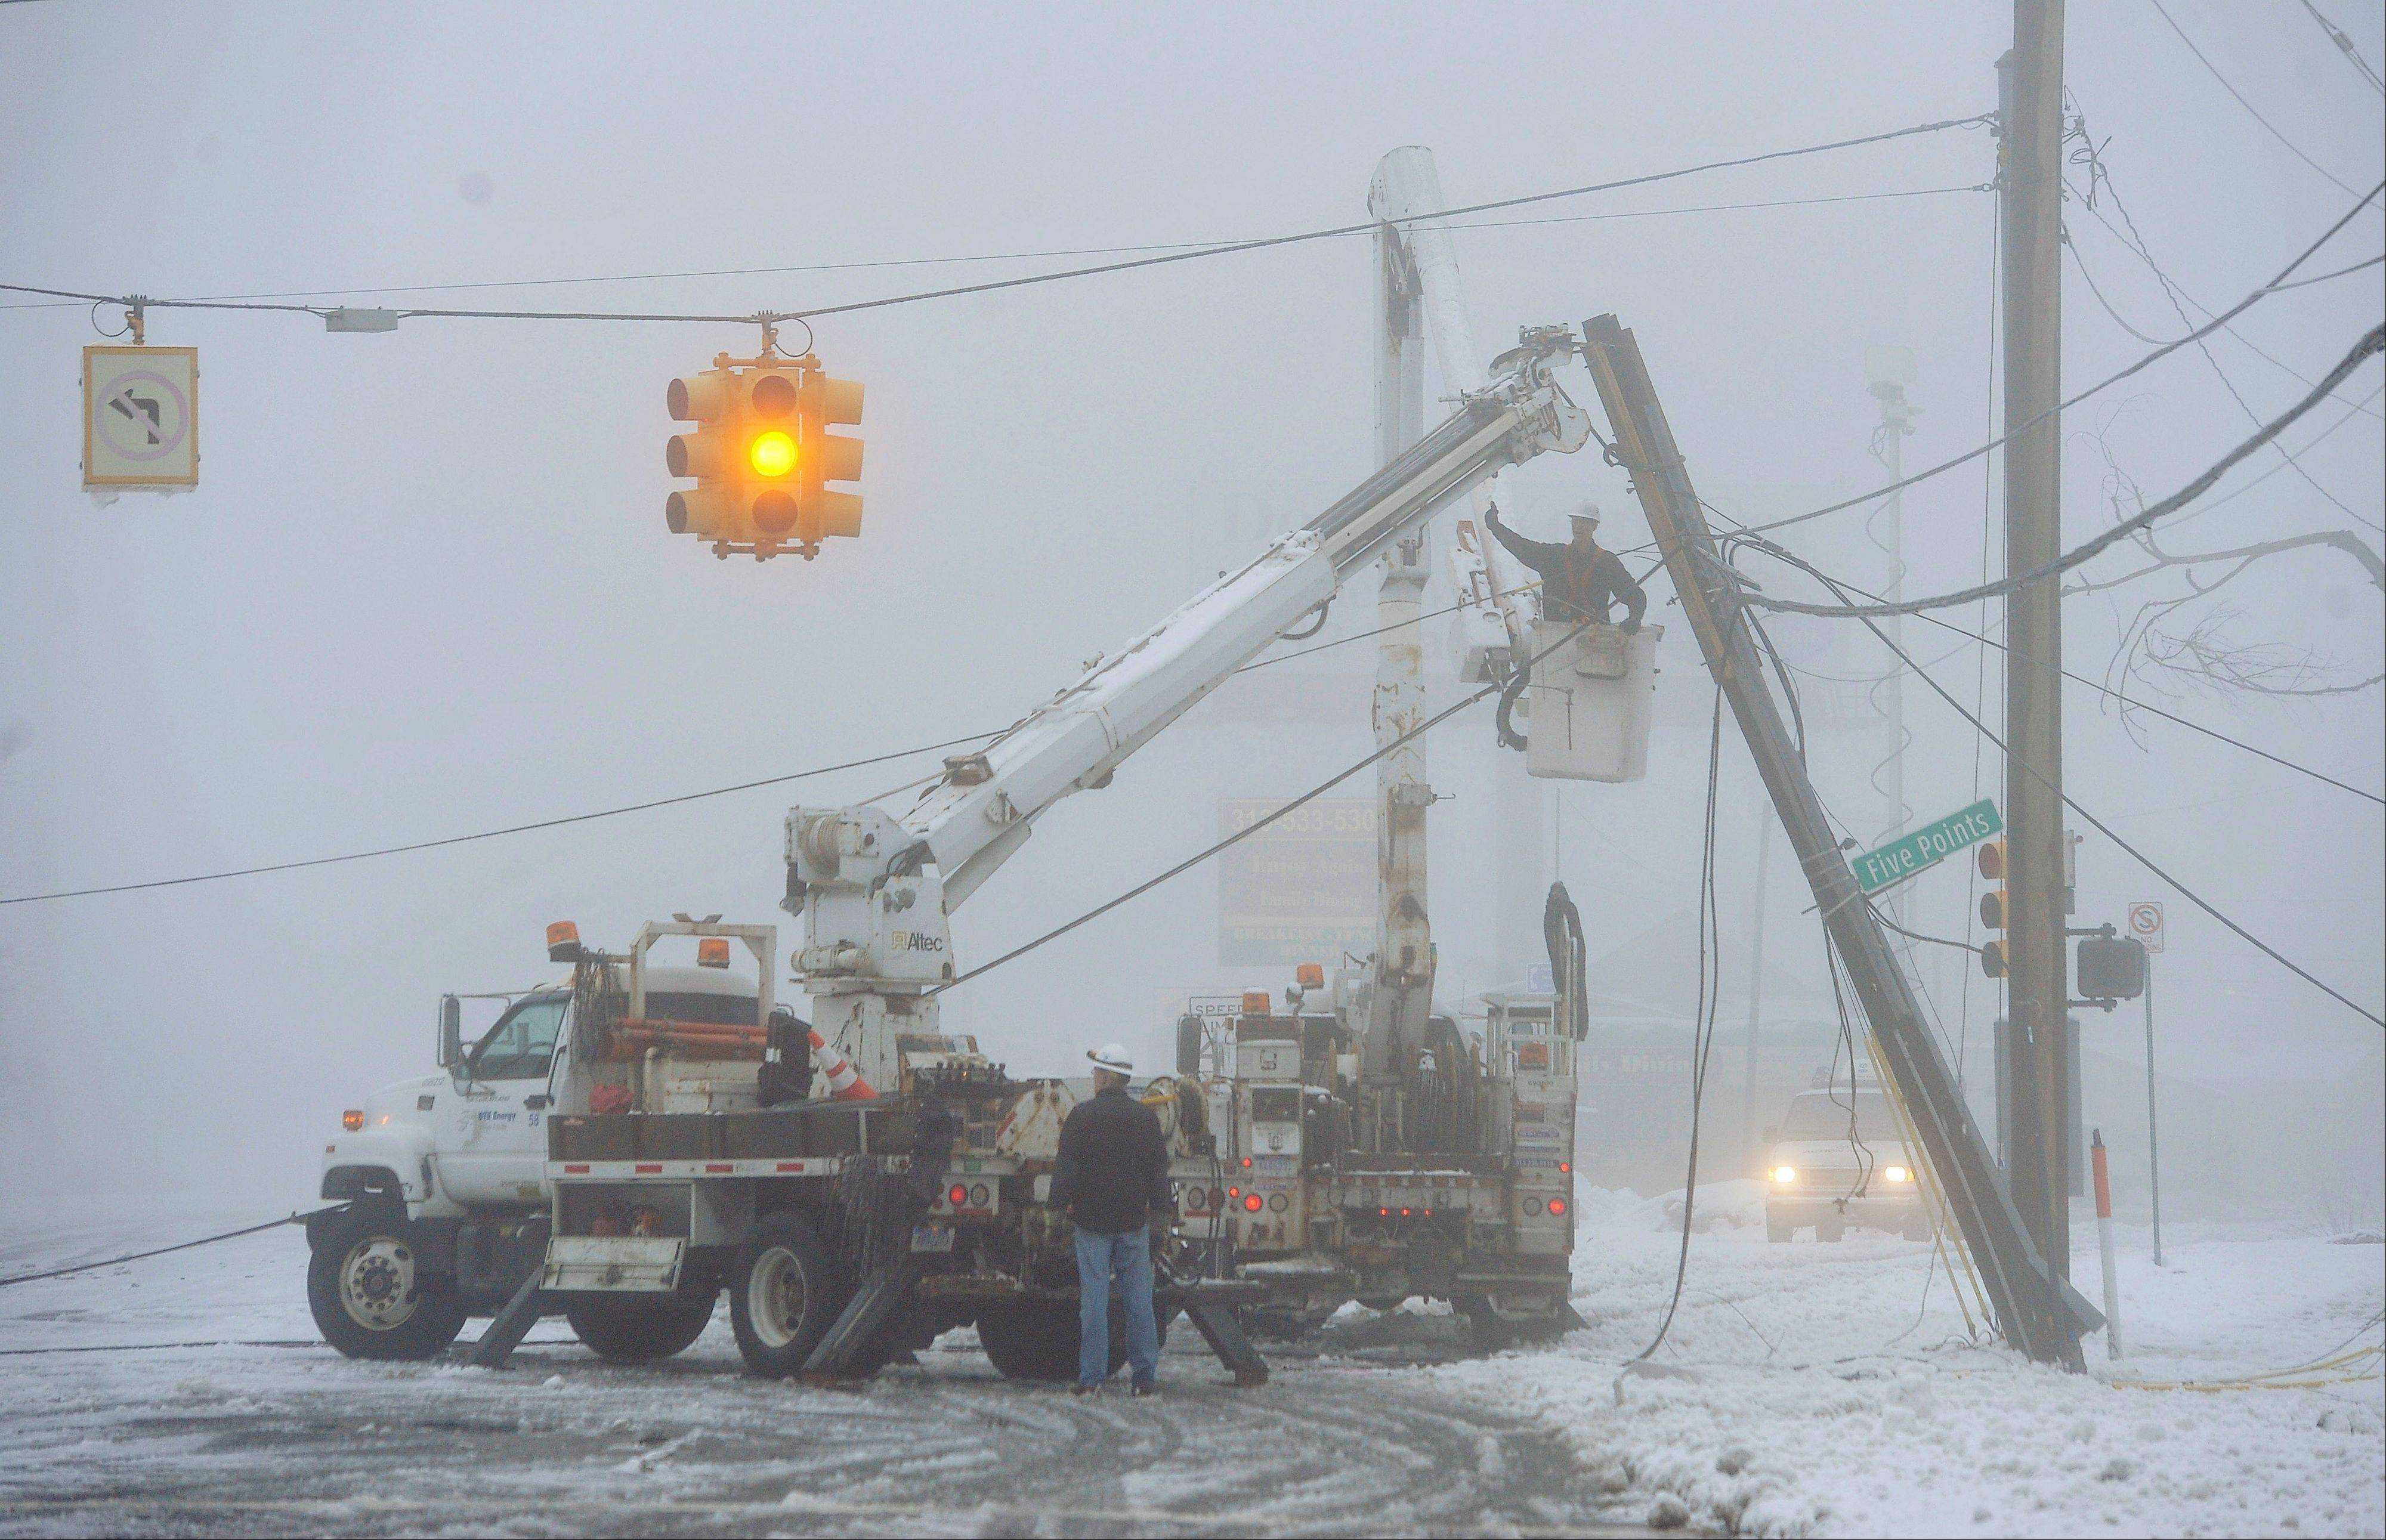 Fog shrouds work crews repairing down power lines Wednesday at 8 mile and Five points, in Southfield, Mich. The storm that hit the nation�s midsection dropped at least 7 inches of snow on parts of Michigan and created dangerous driving conditions.